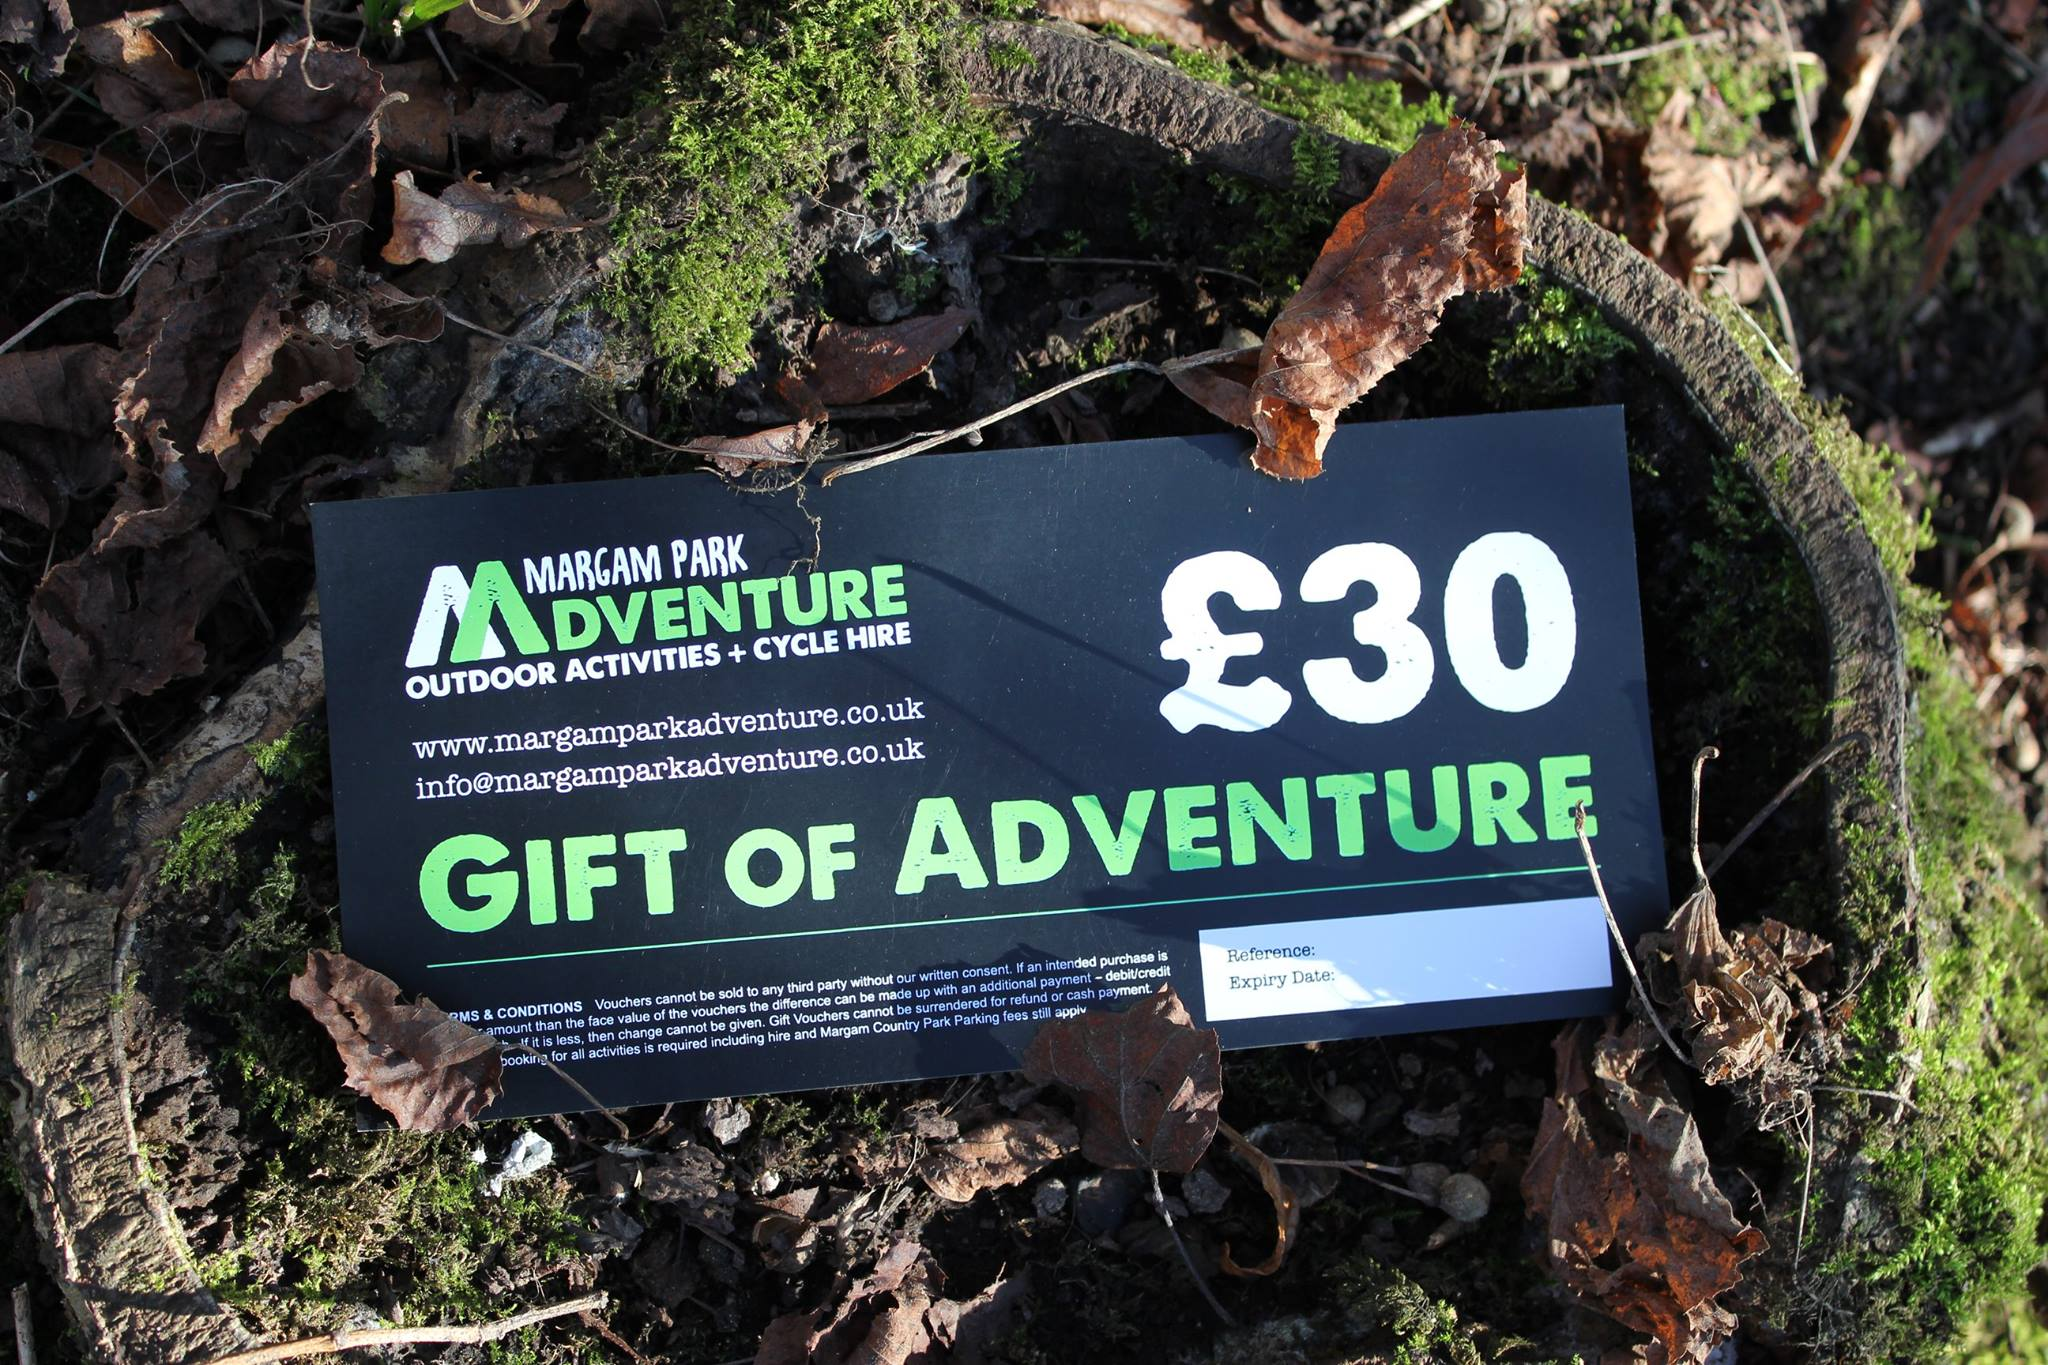 Margam Park Adventure Gift Voucher